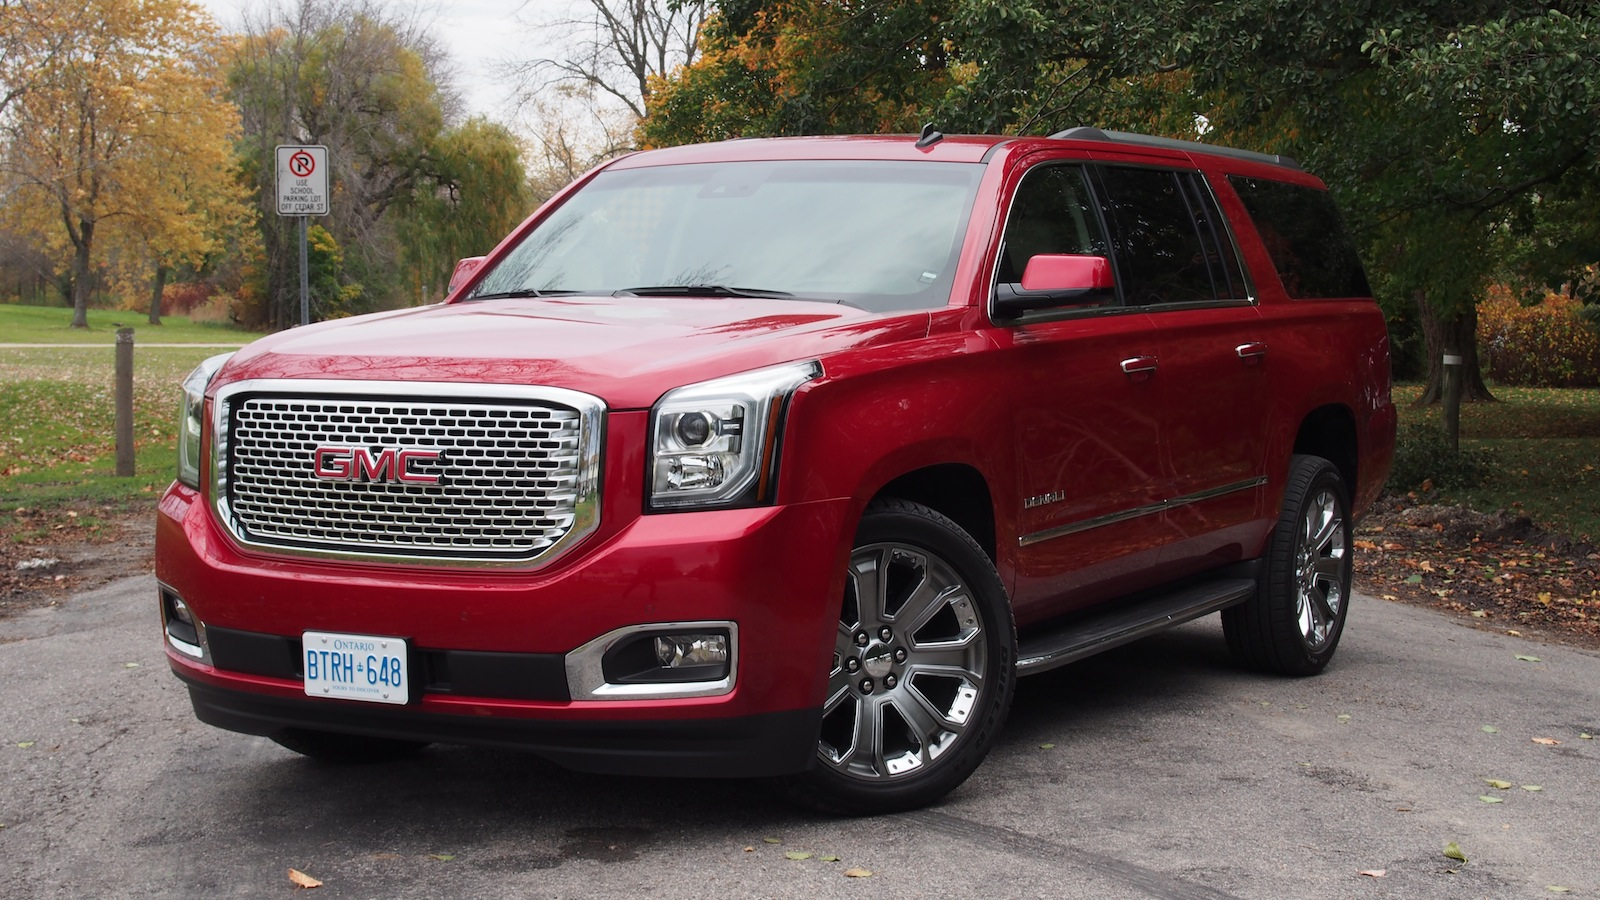 2015 yukon denali price autos post. Black Bedroom Furniture Sets. Home Design Ideas